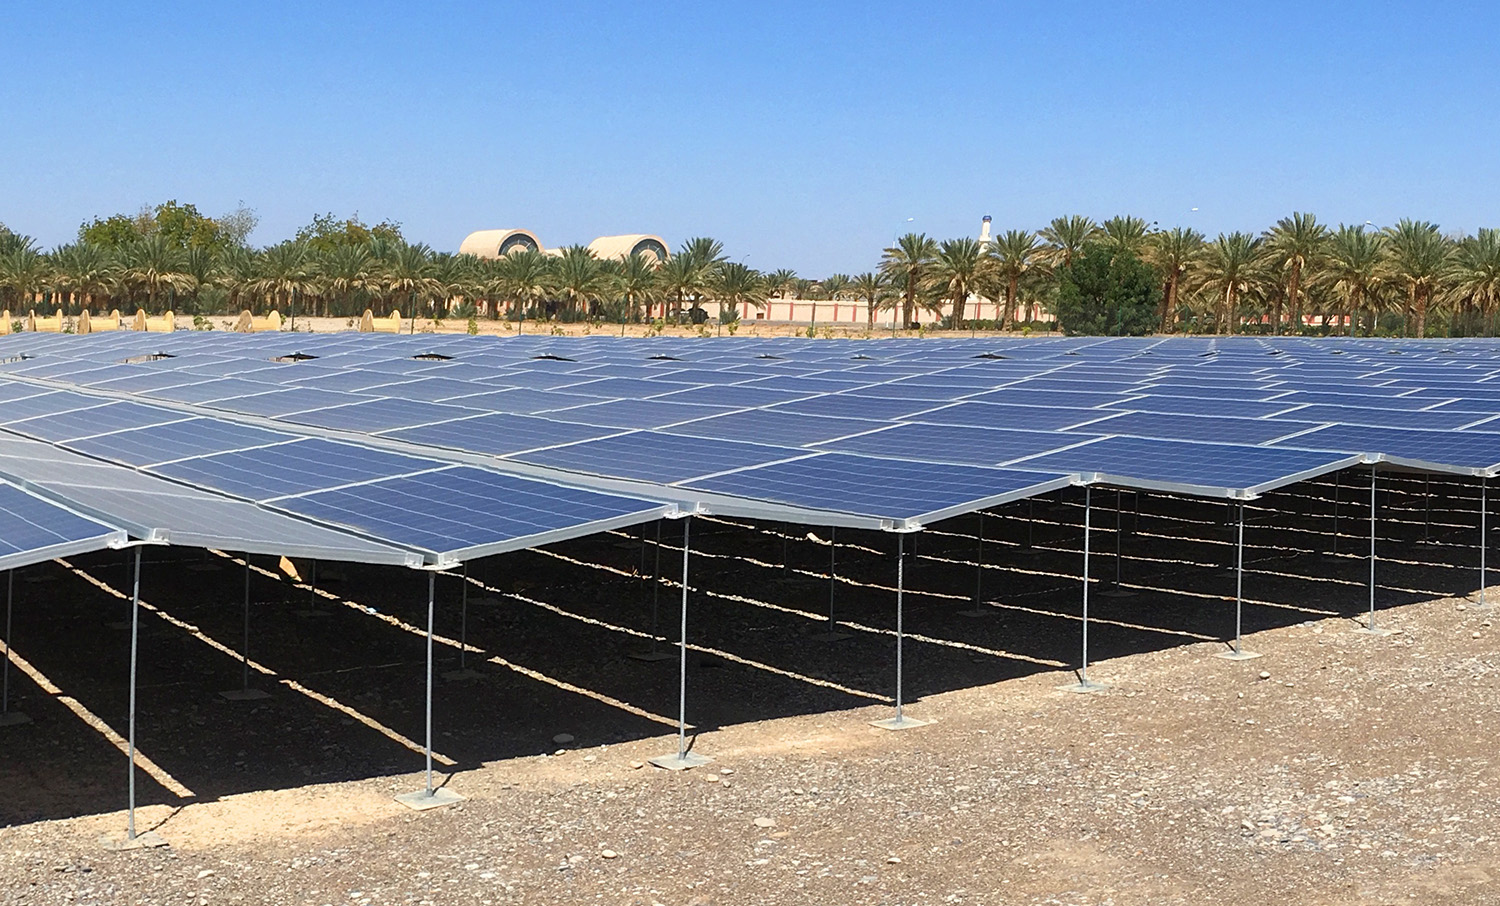 Design of Mounting System for Solar Power Plants